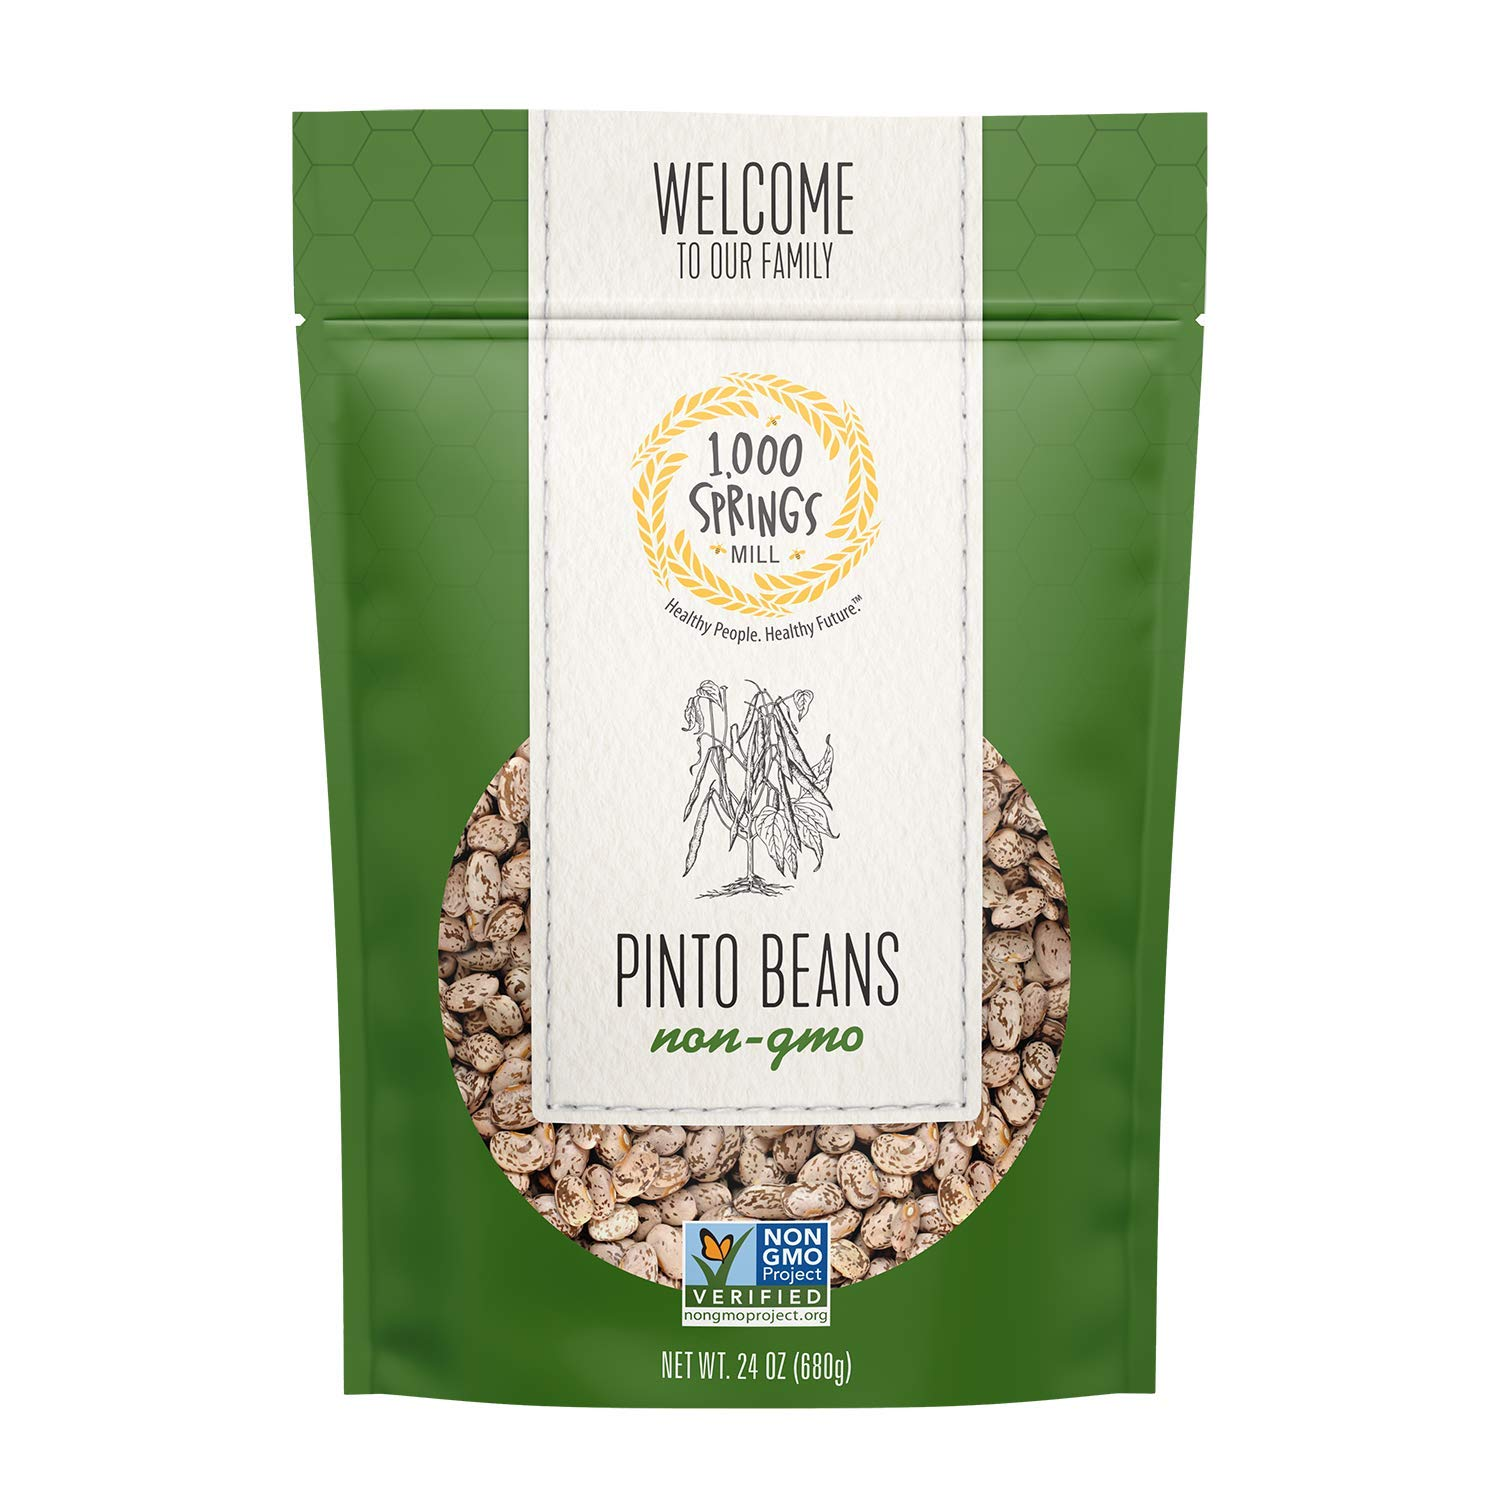 1000 Springs Mill - Non-GMO Pinto Beans | Used for Soups, Stews, Dips, Chili, Burritos, Refried Beans and more | Bulk Dry Brown Beans | Resealable Bag | Vegan Friendly | 24oz (Pack of 3)